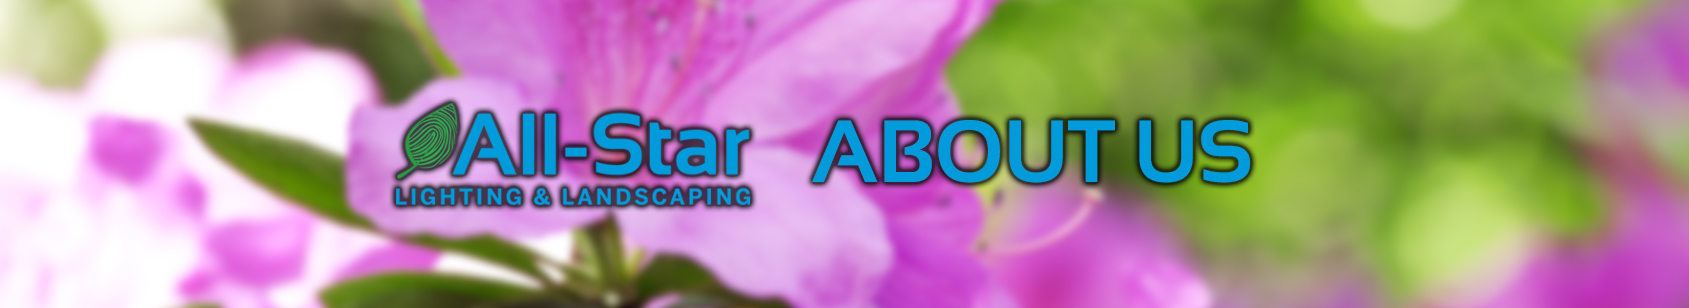 All Star Lighting Landscaping Mabout Us